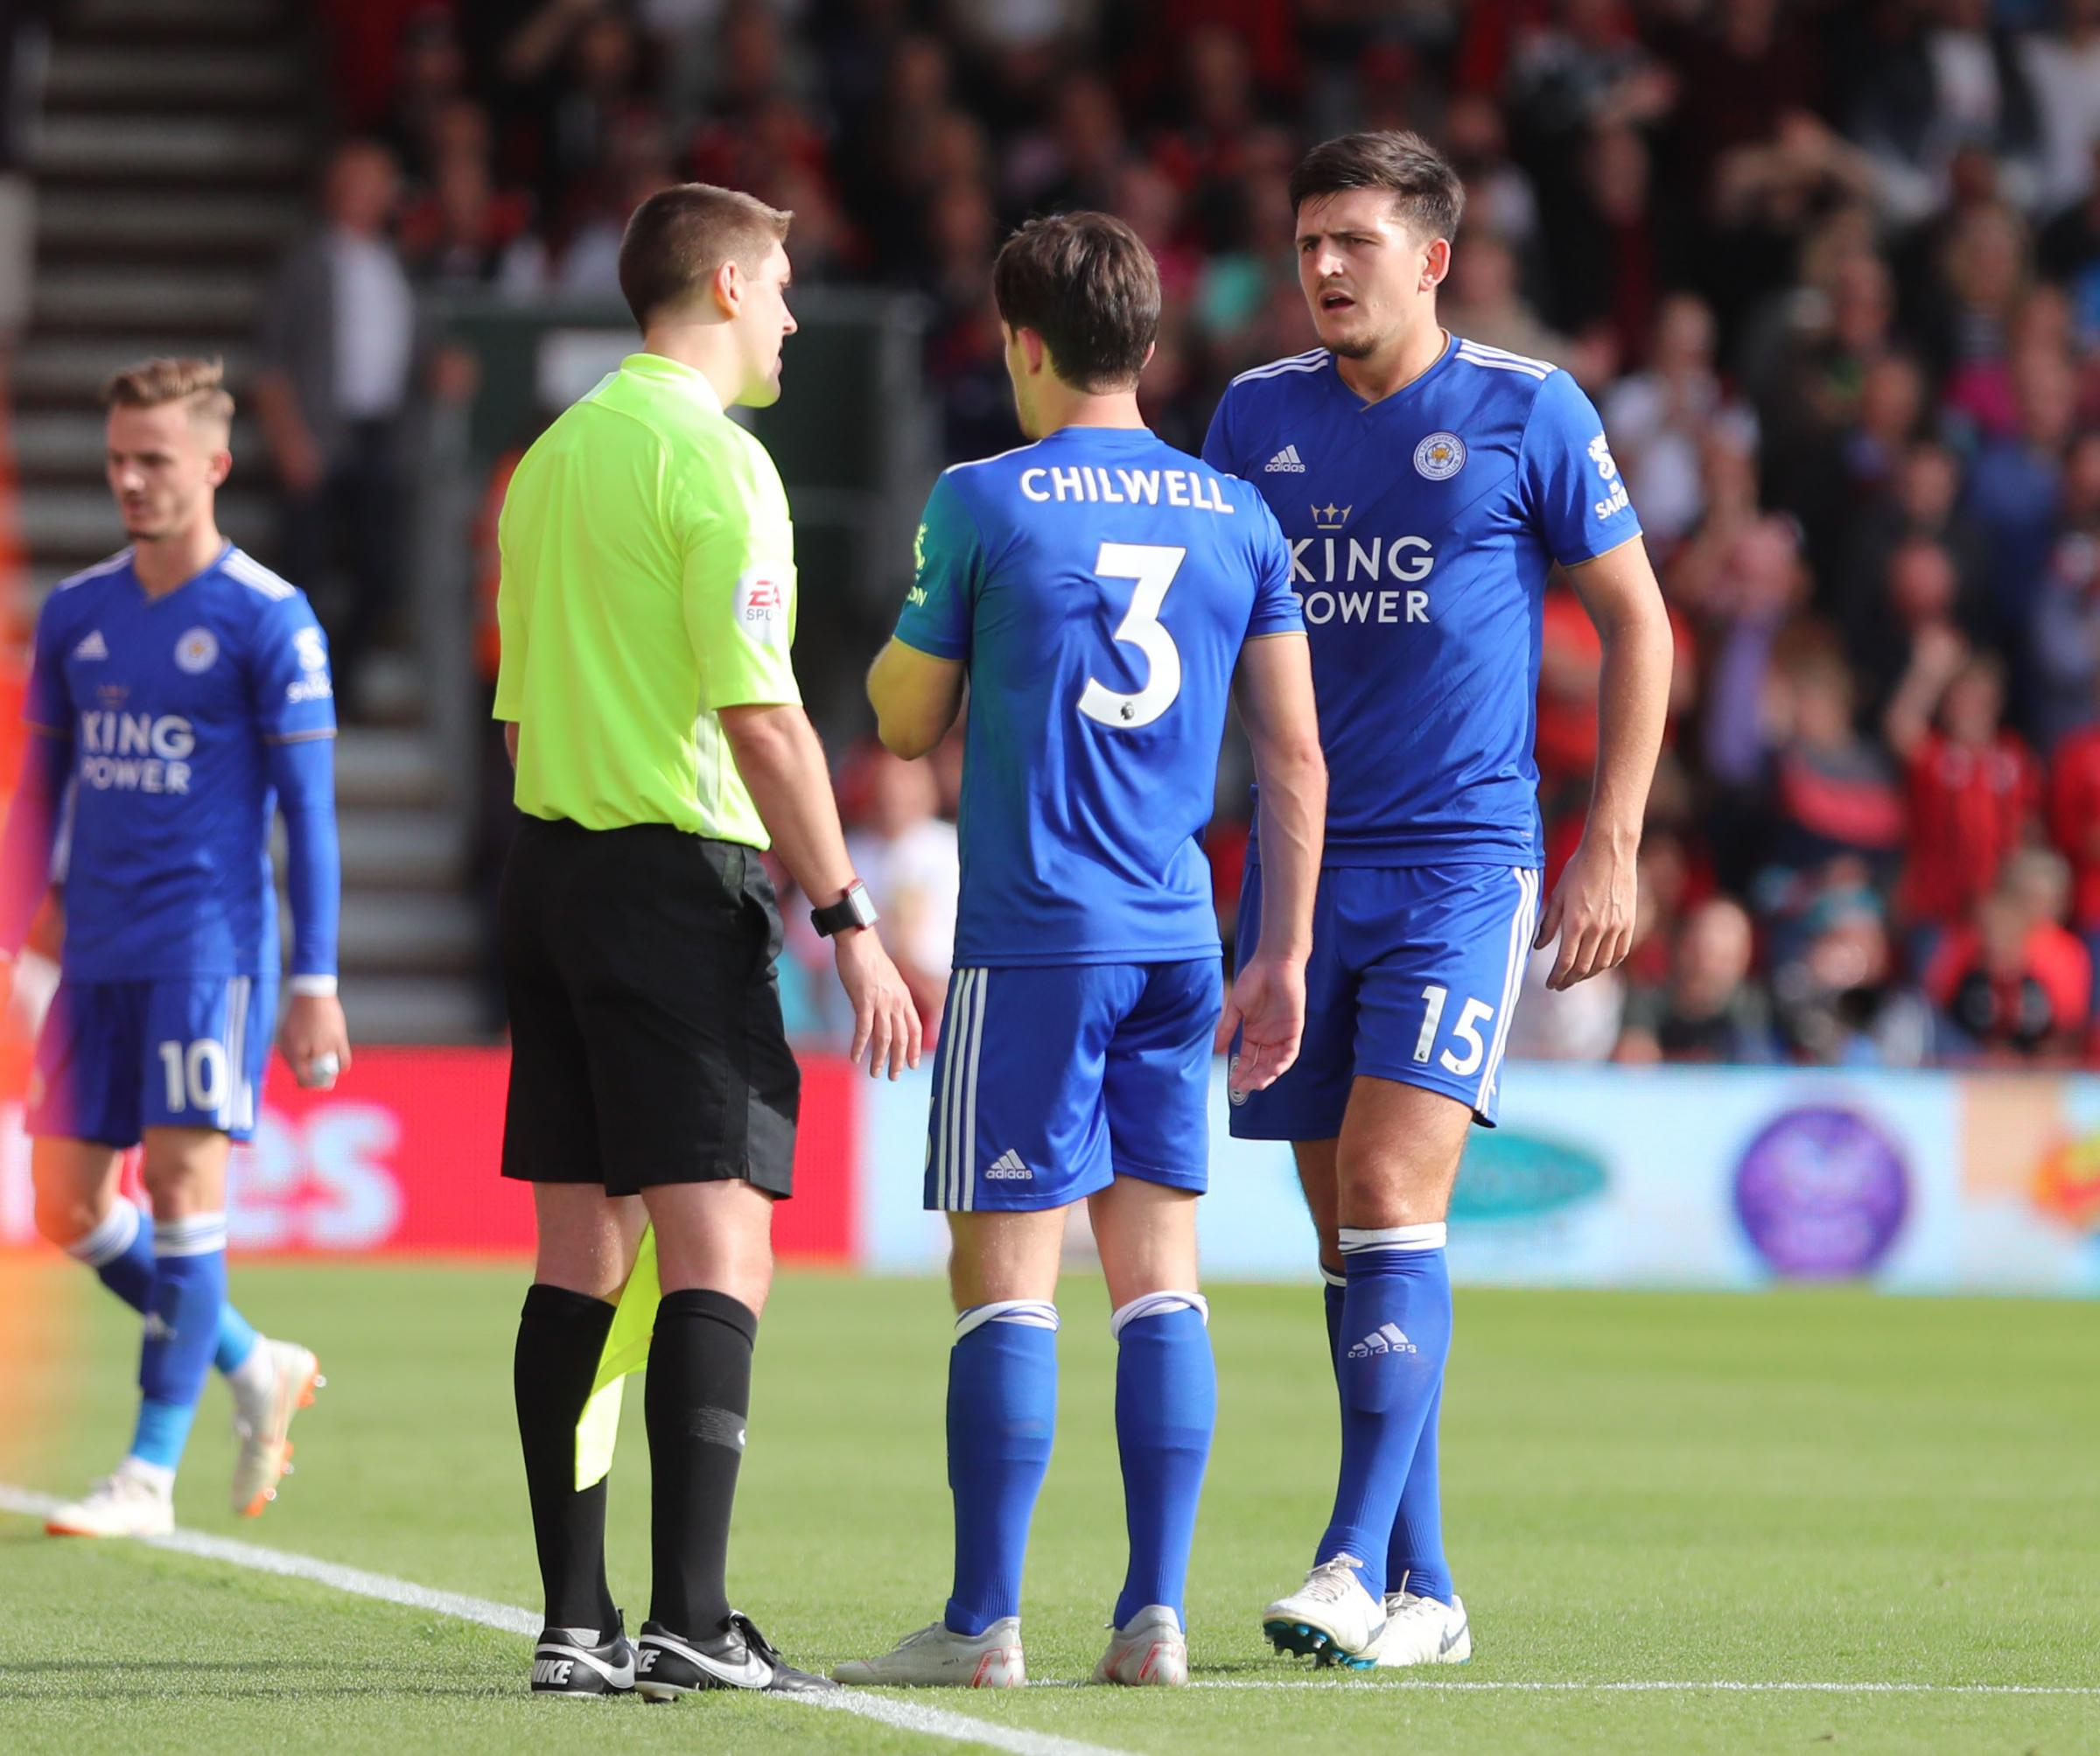 TRIPPED UP: Leicester suffered a 4-2 defeat at Vitality Stadium having travelled by coach the day before (Picture: Corin Messer)